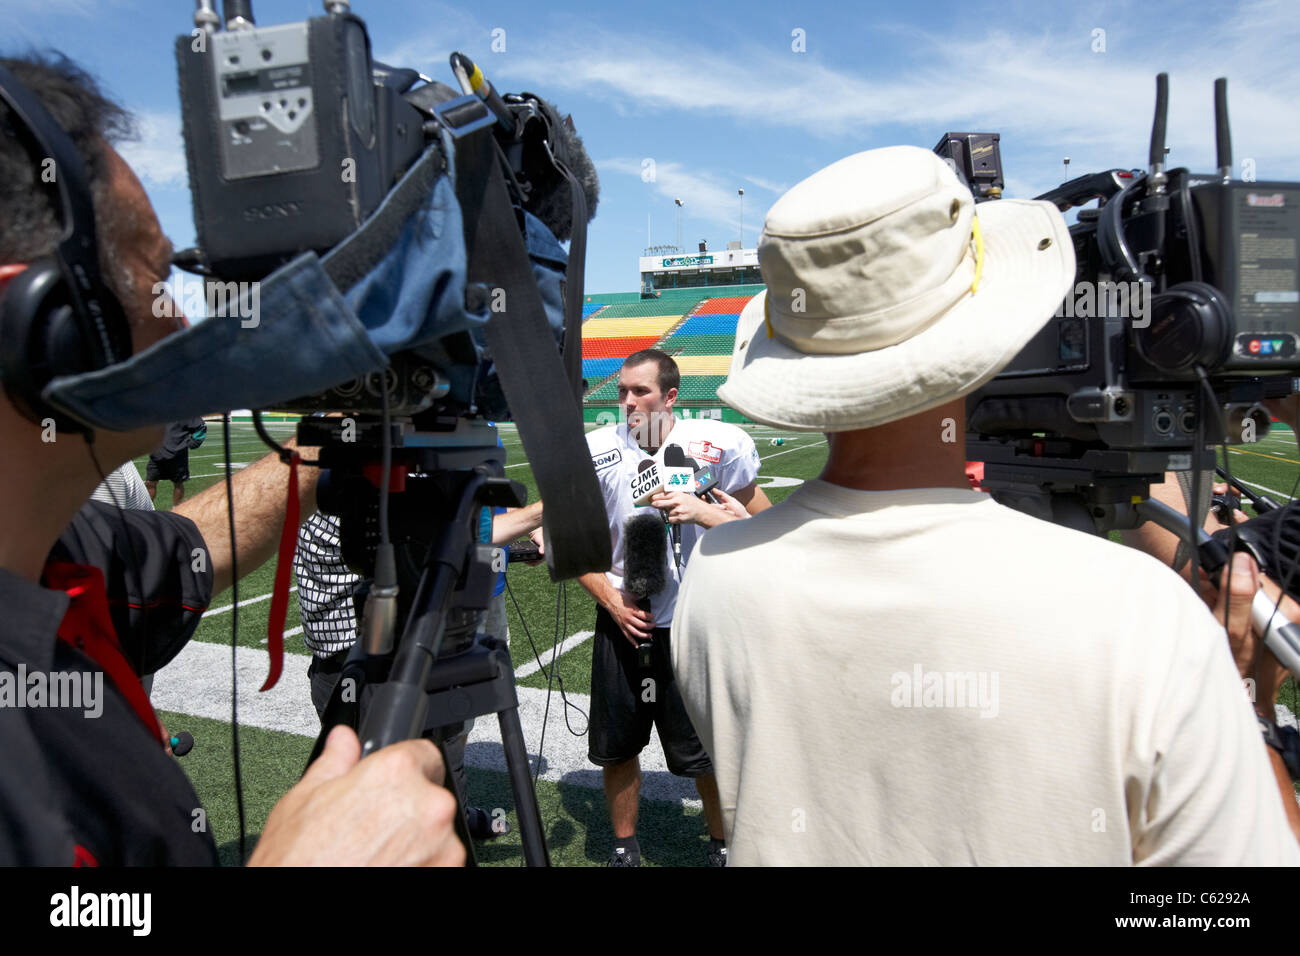 saskatchewan roughriders slotback weston dressler being interviewed during pre season training mosaic stadium taylor - Stock Image